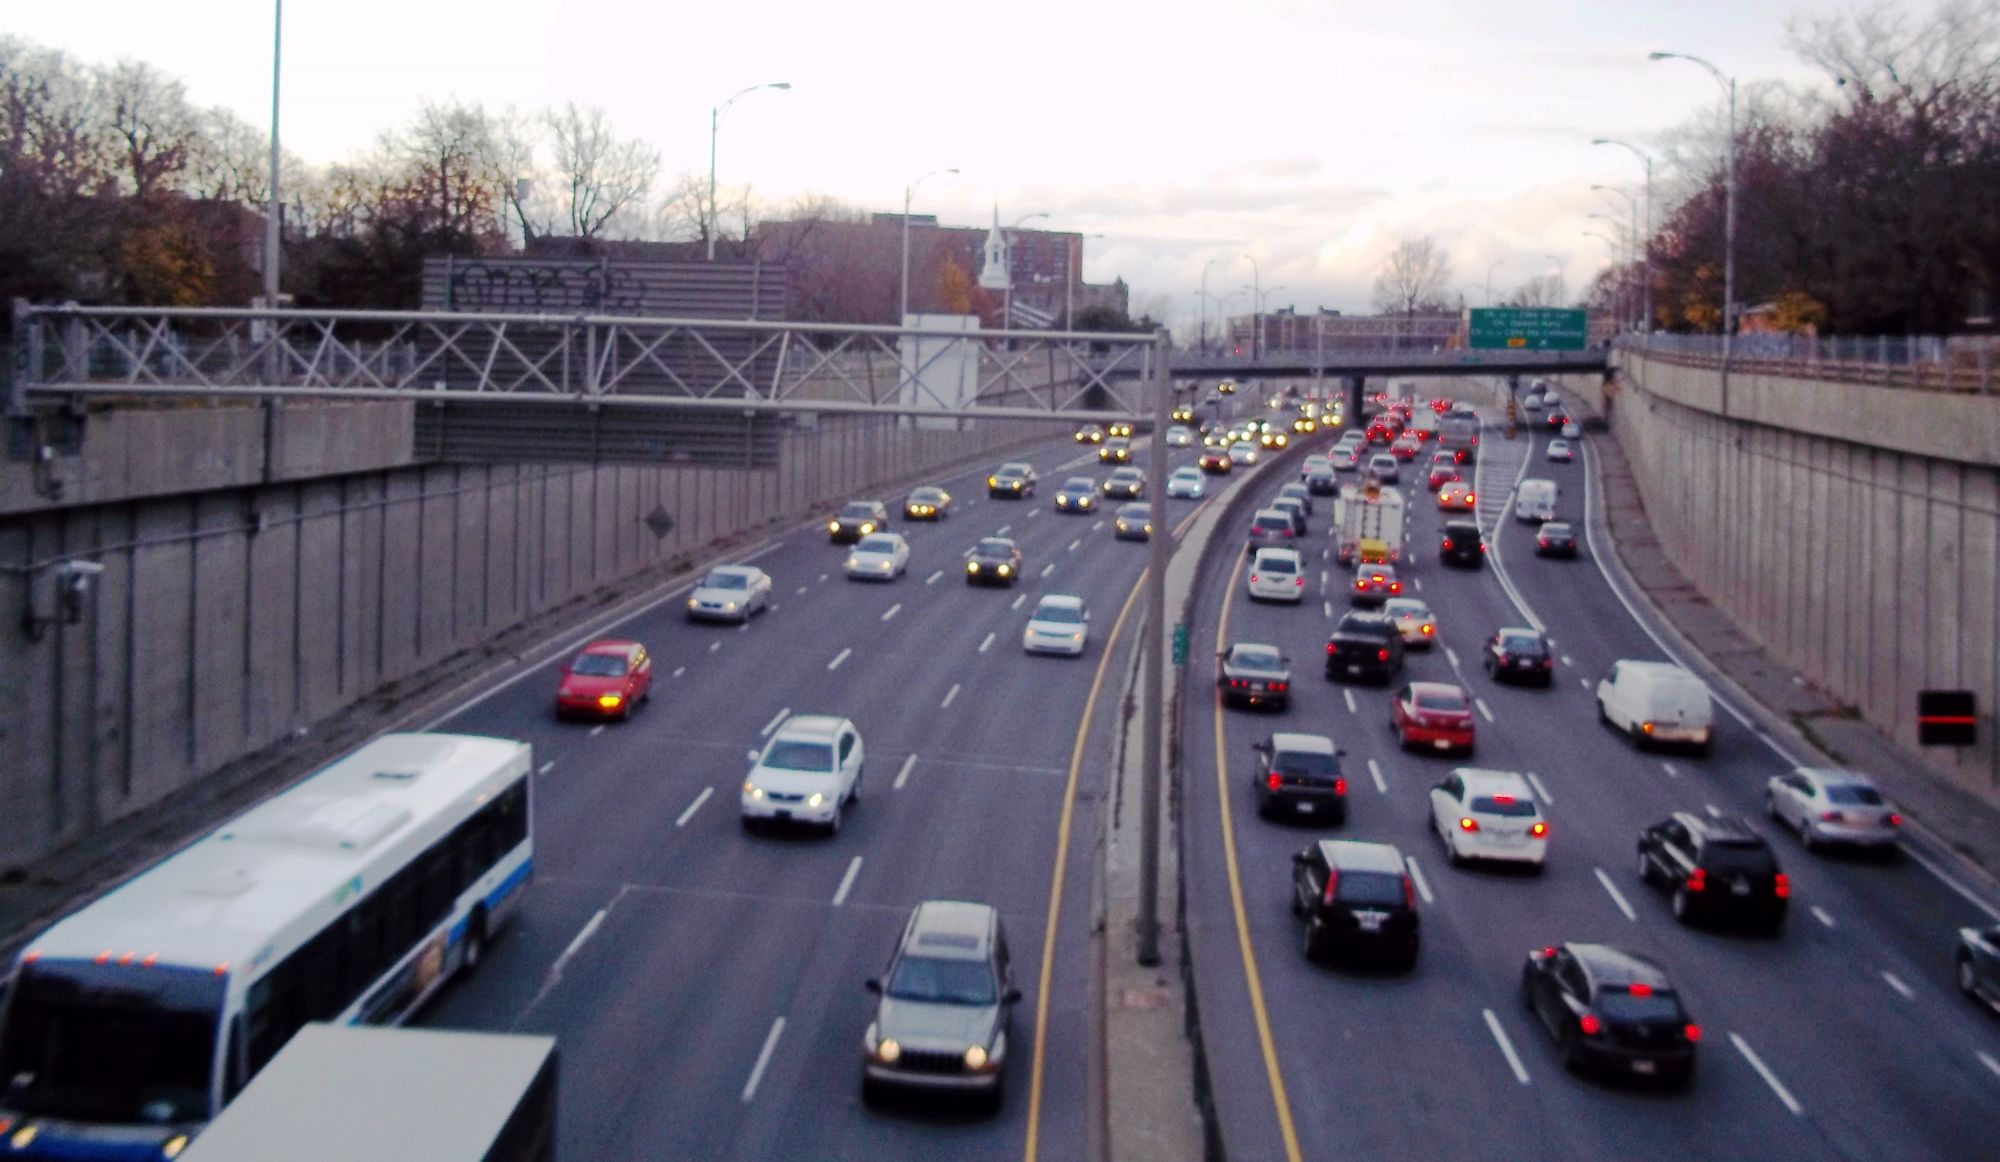 Brace Yourselves: the Worst of Turcot Traffic Starts Monday